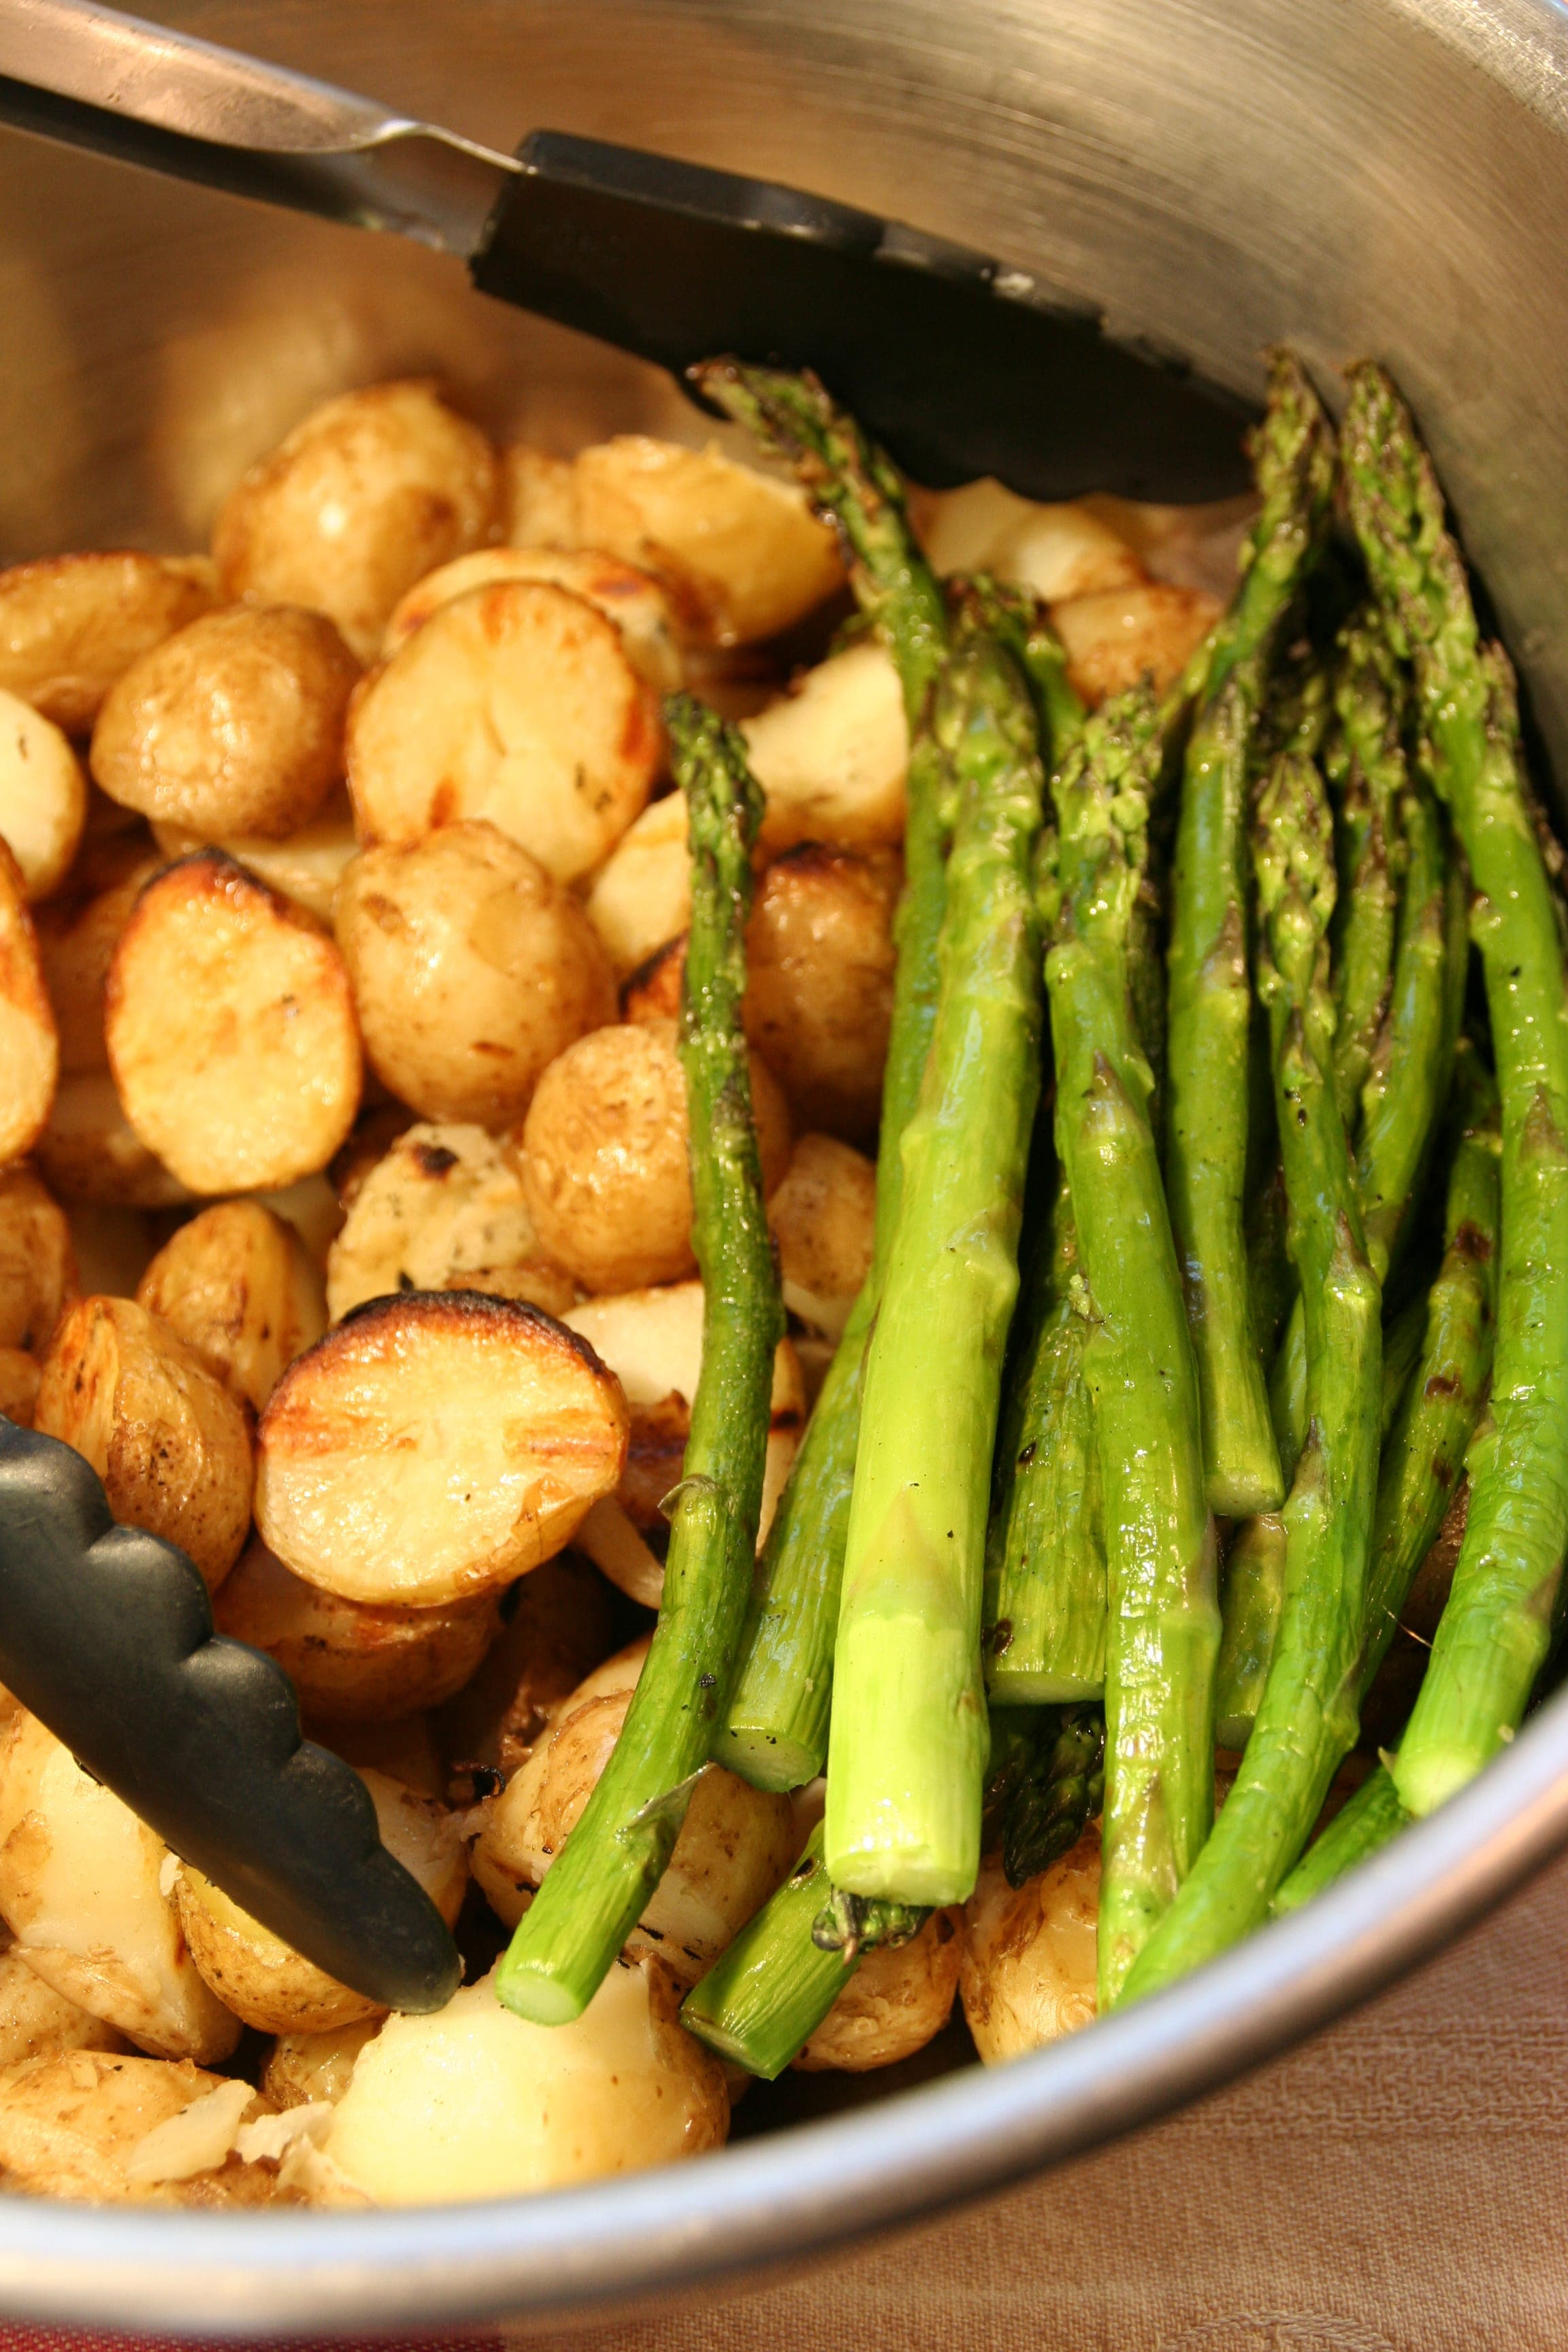 Grilled New Potatoes and Asparagus